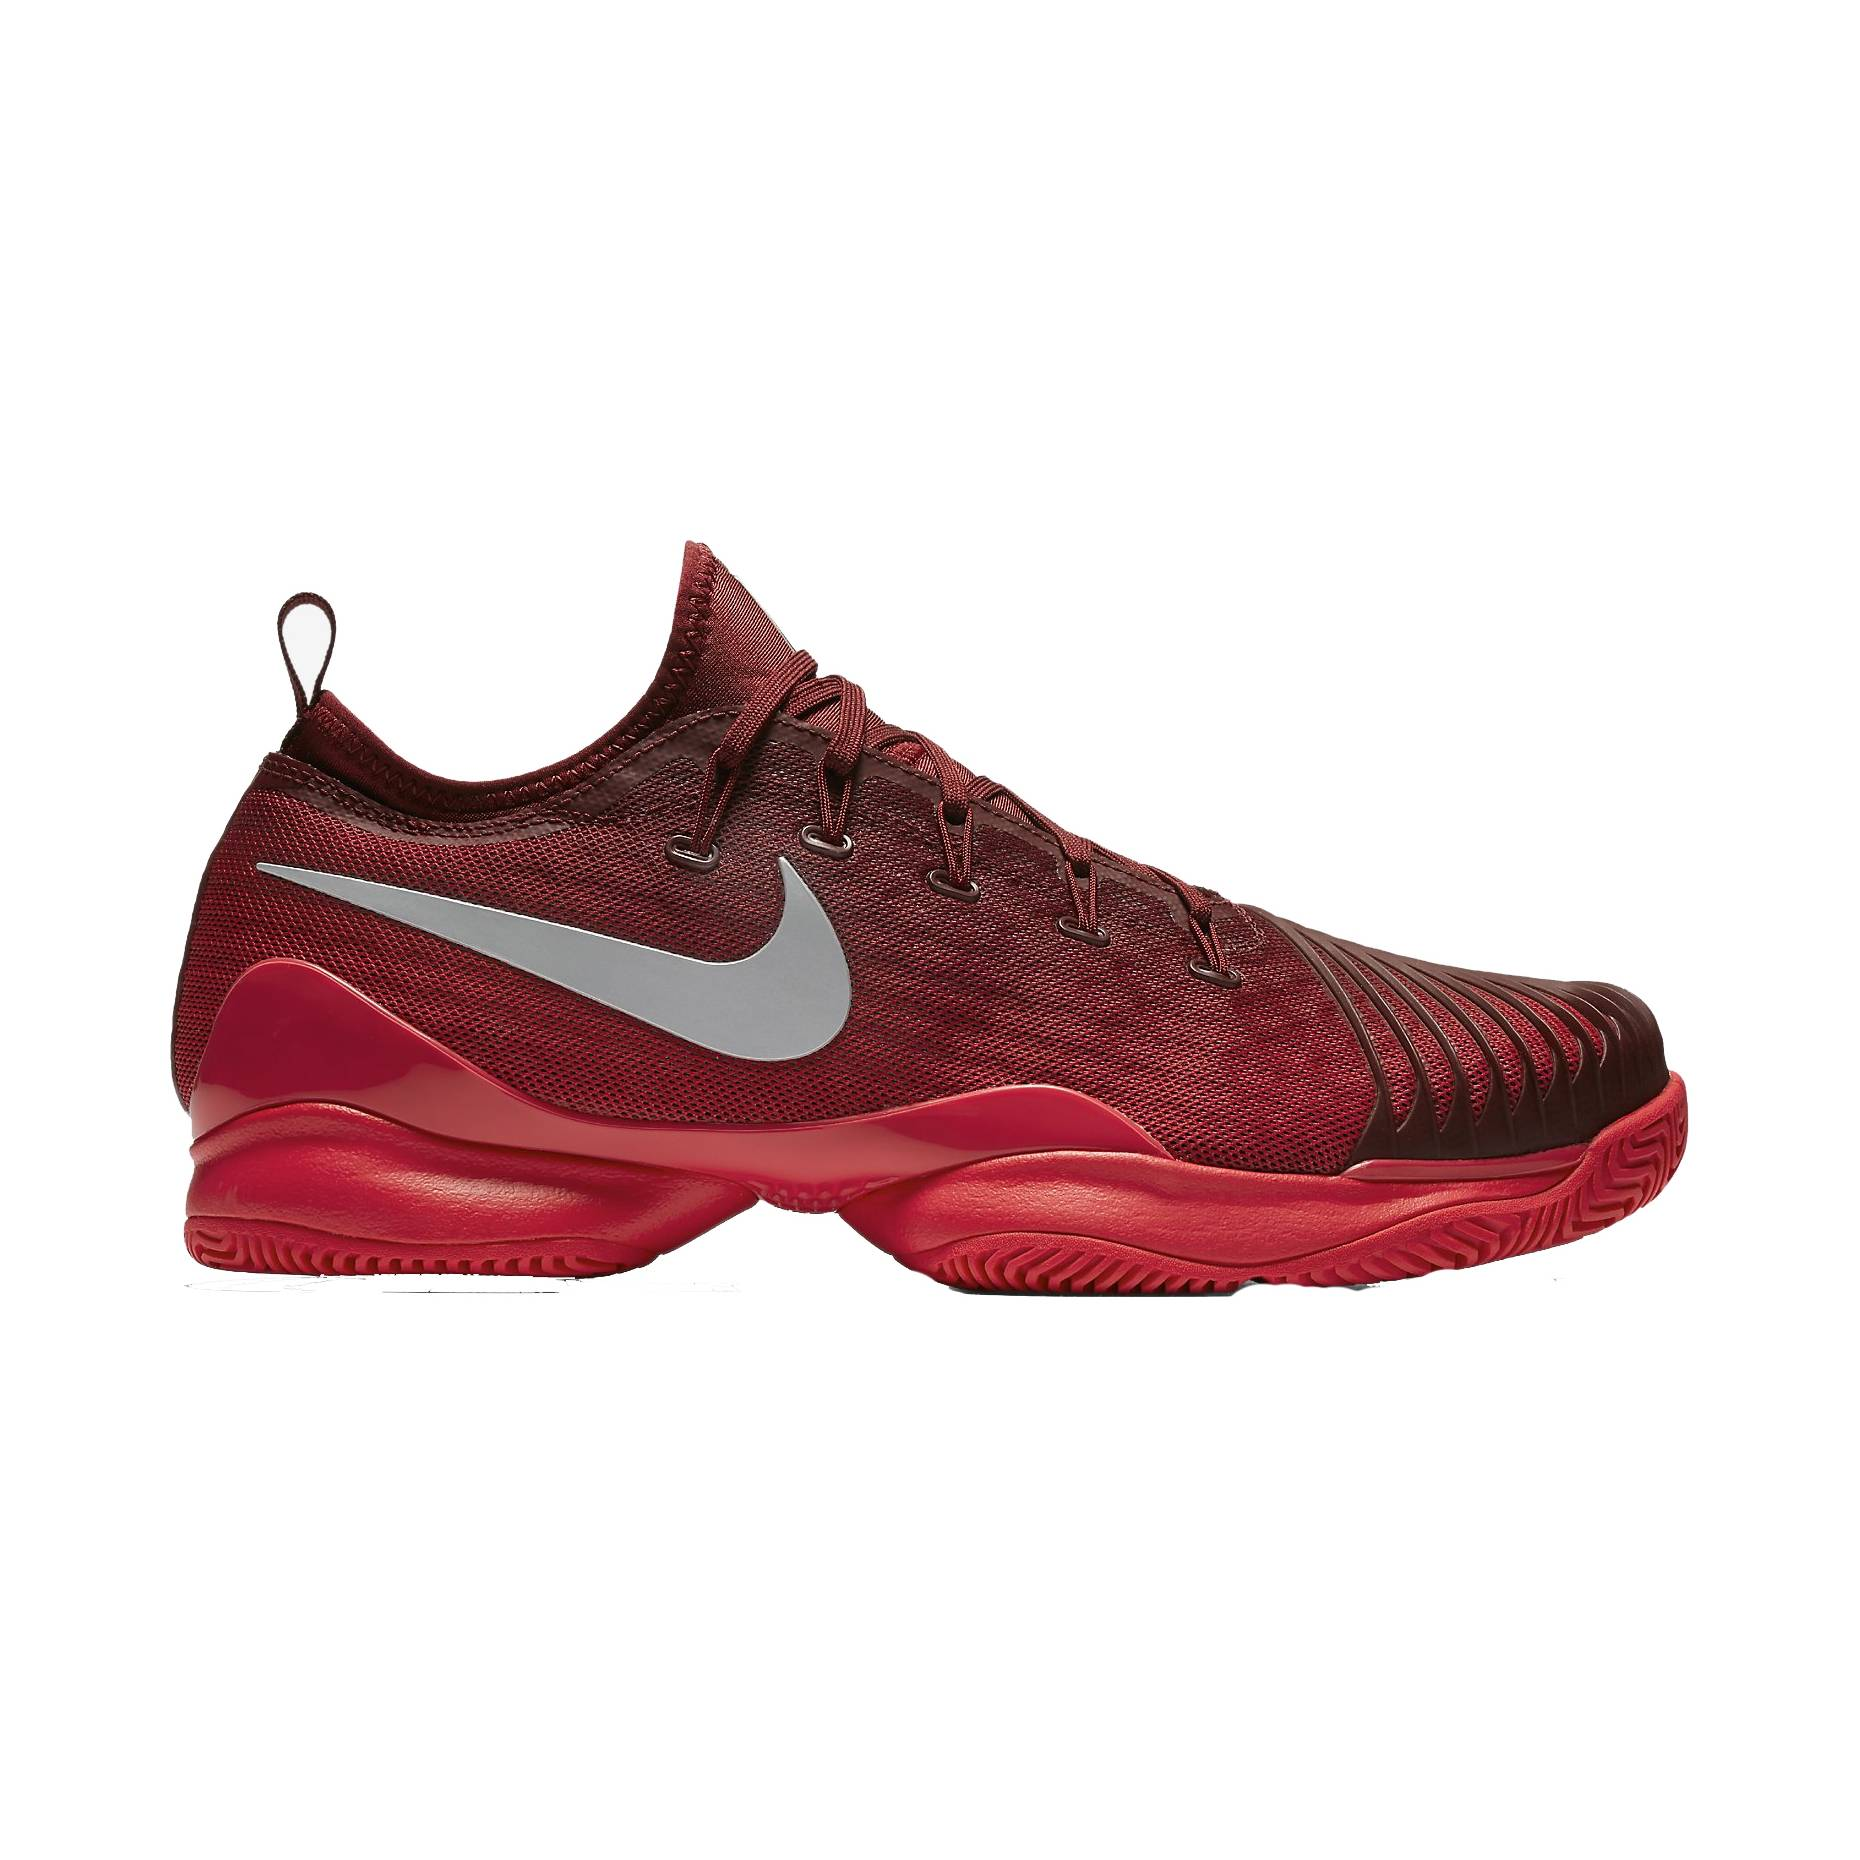 Nike Air Zoom Ultra React Red/Silver 44.5